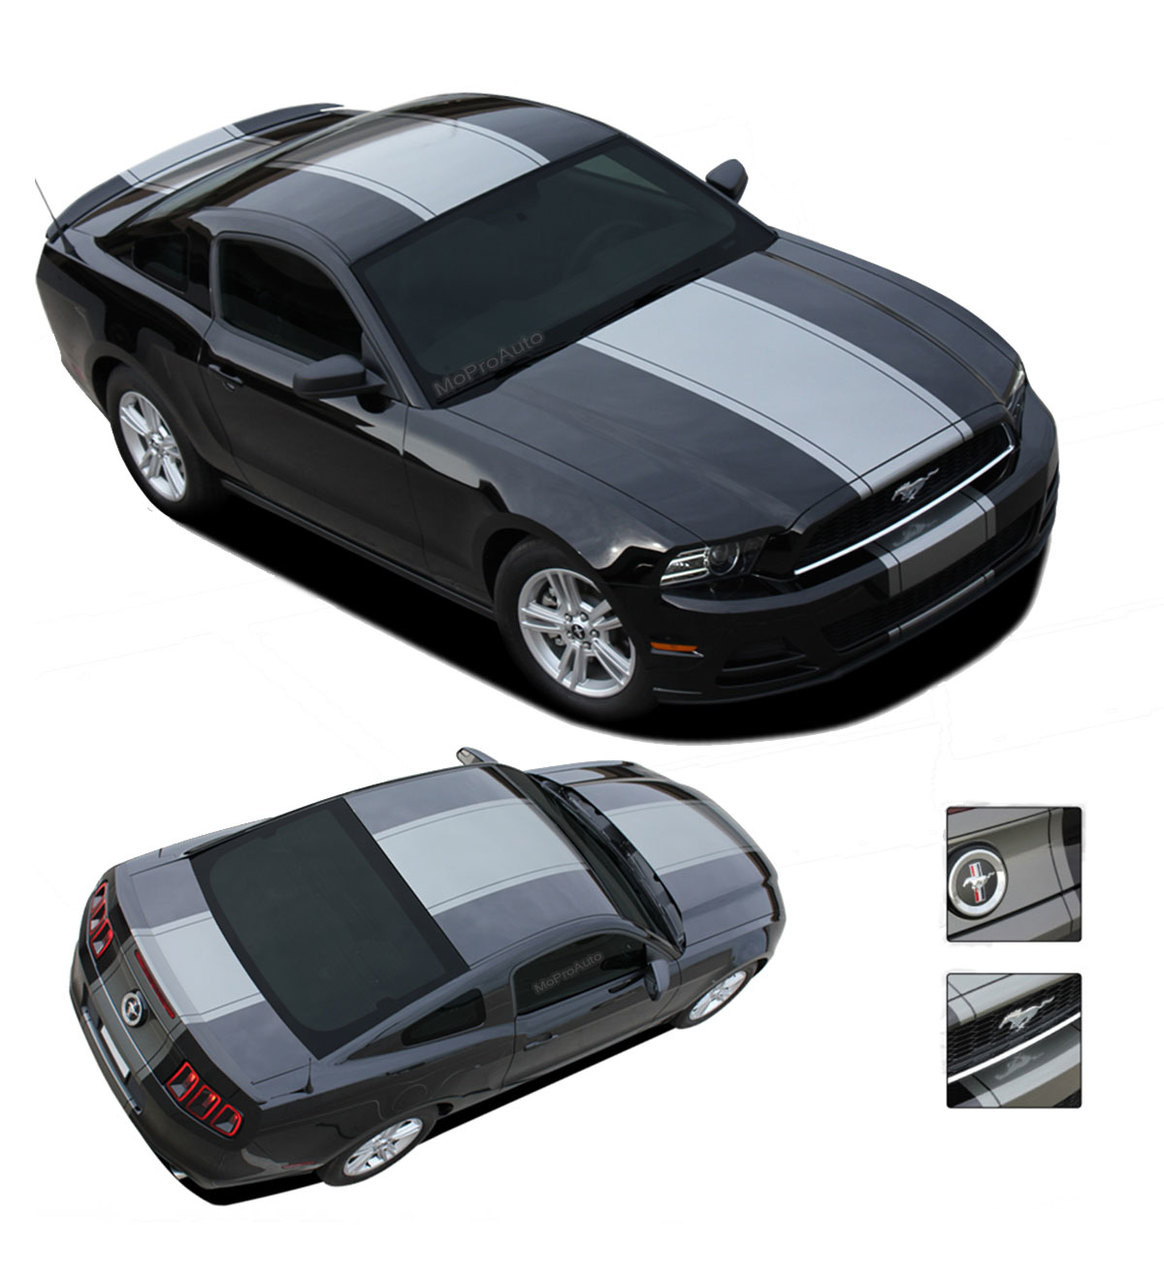 Venom super snake style ford mustang racing and rally stripes vinyl graphics kit new super snake style vinyl graphics kit for the ford mustang